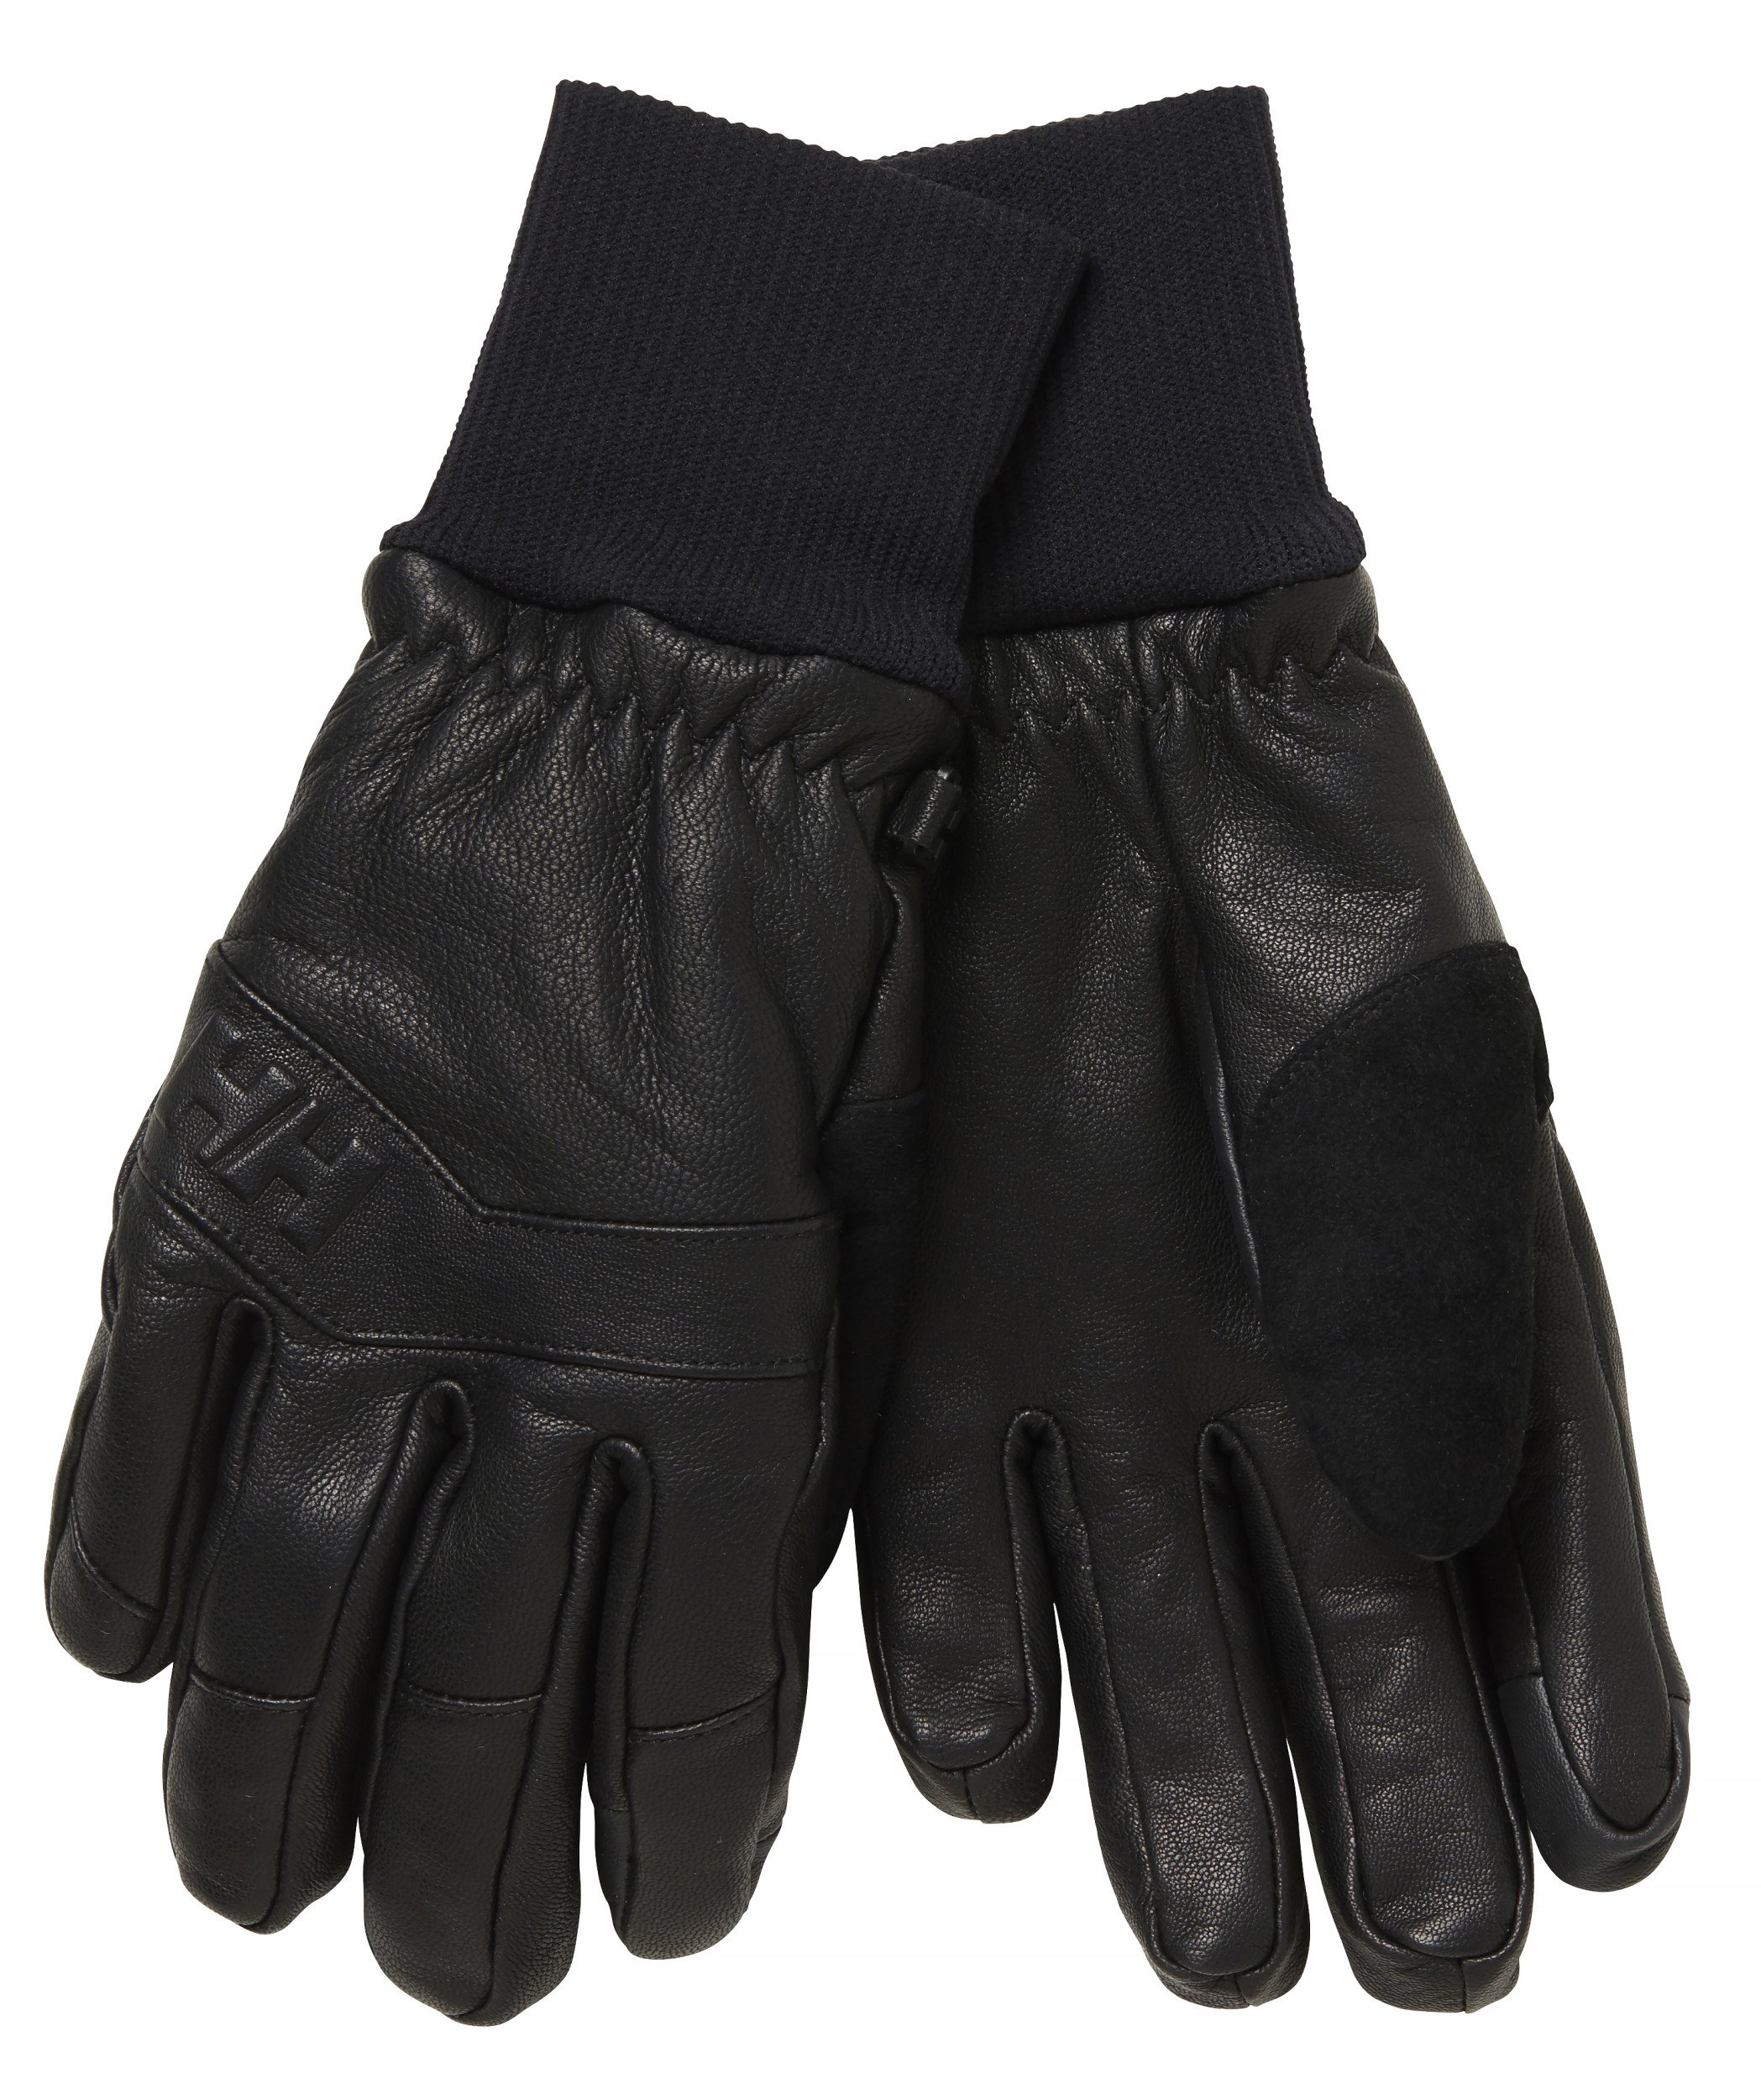 Helly Hansen Women's W Powderqueen Ht Gloves, Black, Large